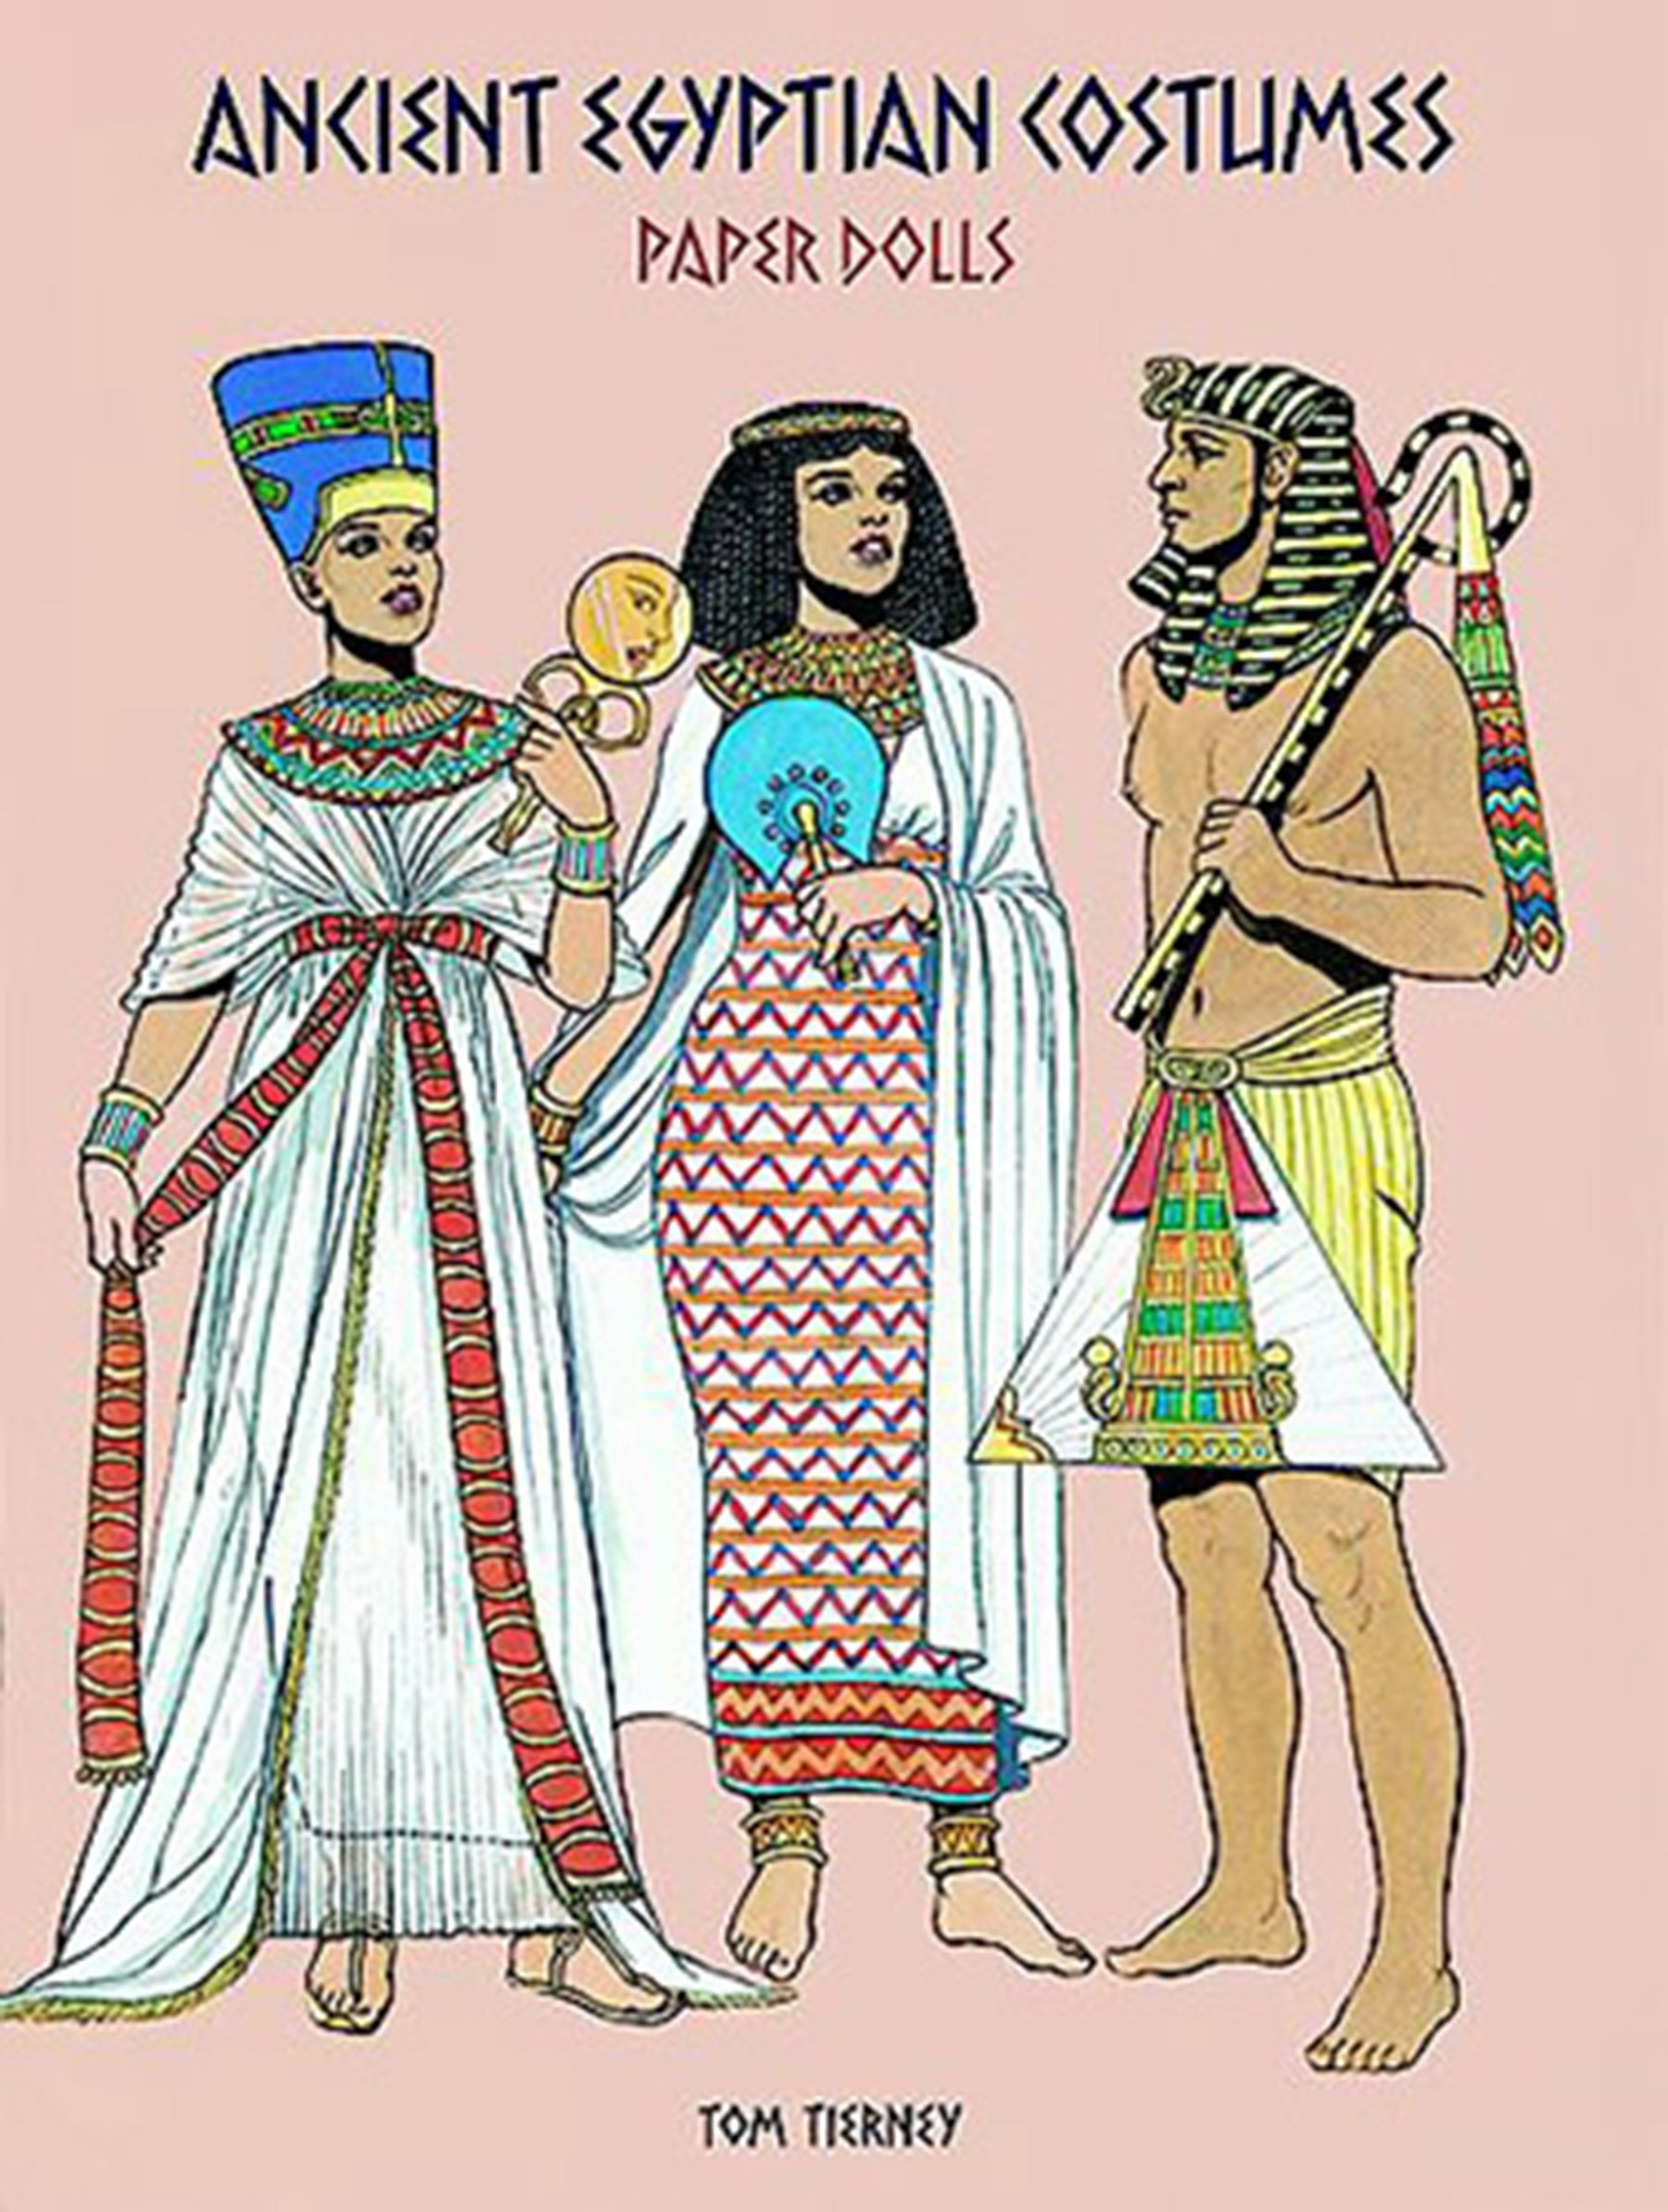 Tom tierney colonial fashions paper dolls - Ancient Egyptian Costumes Paper Dolls Dover Paper Dolls Tom Tierney 9780486295855 Amazon Com Books